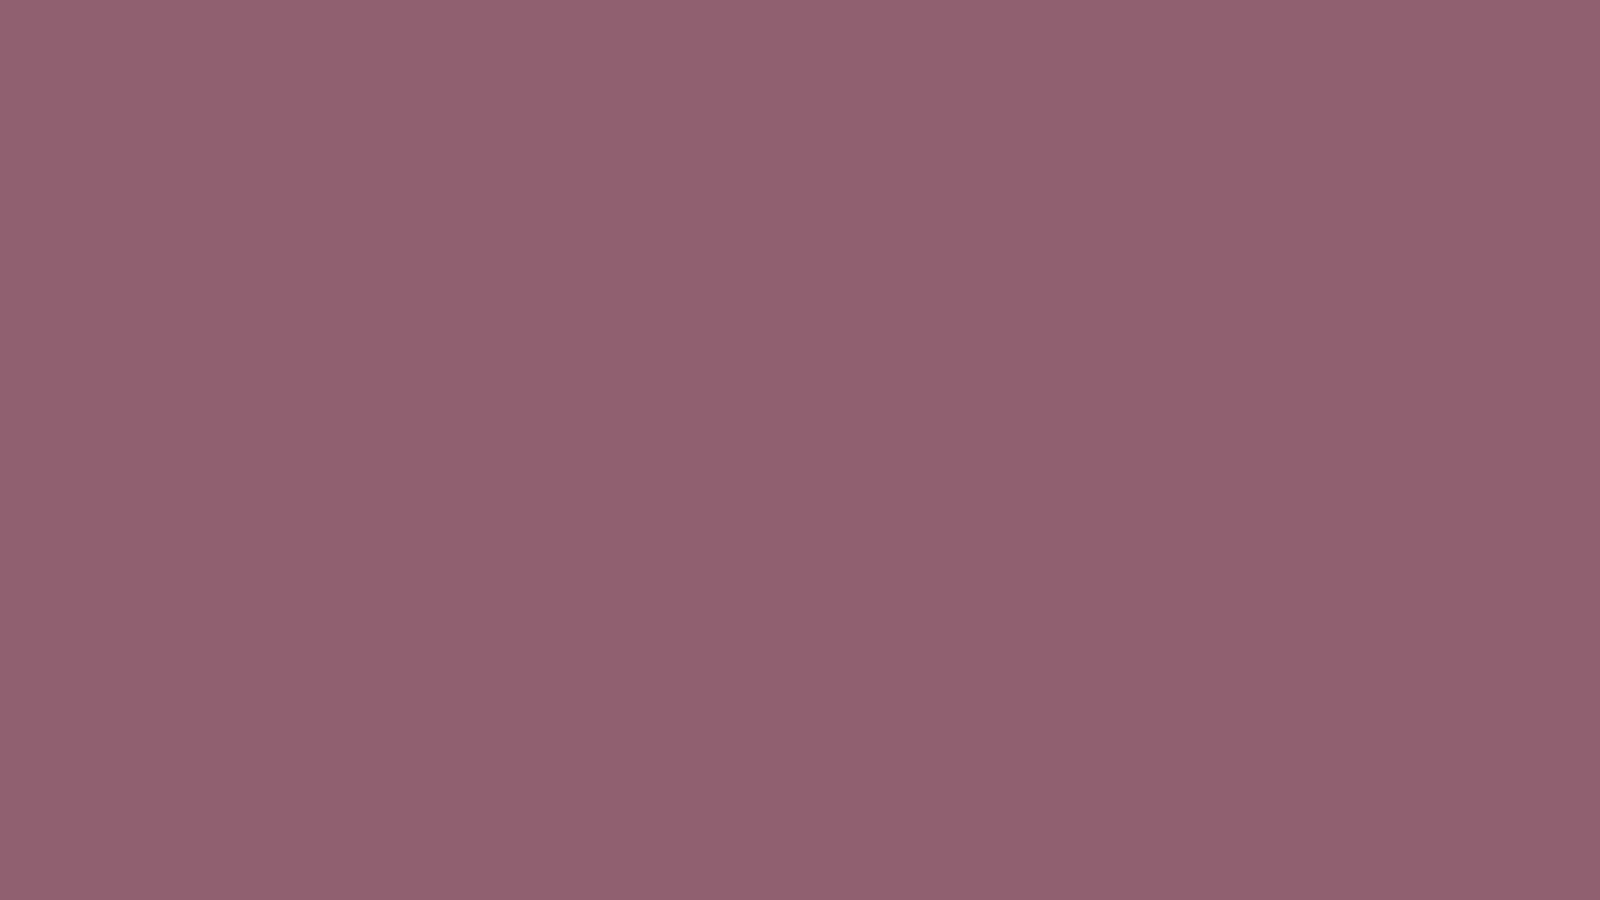 1600x900 Raspberry Glace Solid Color Background